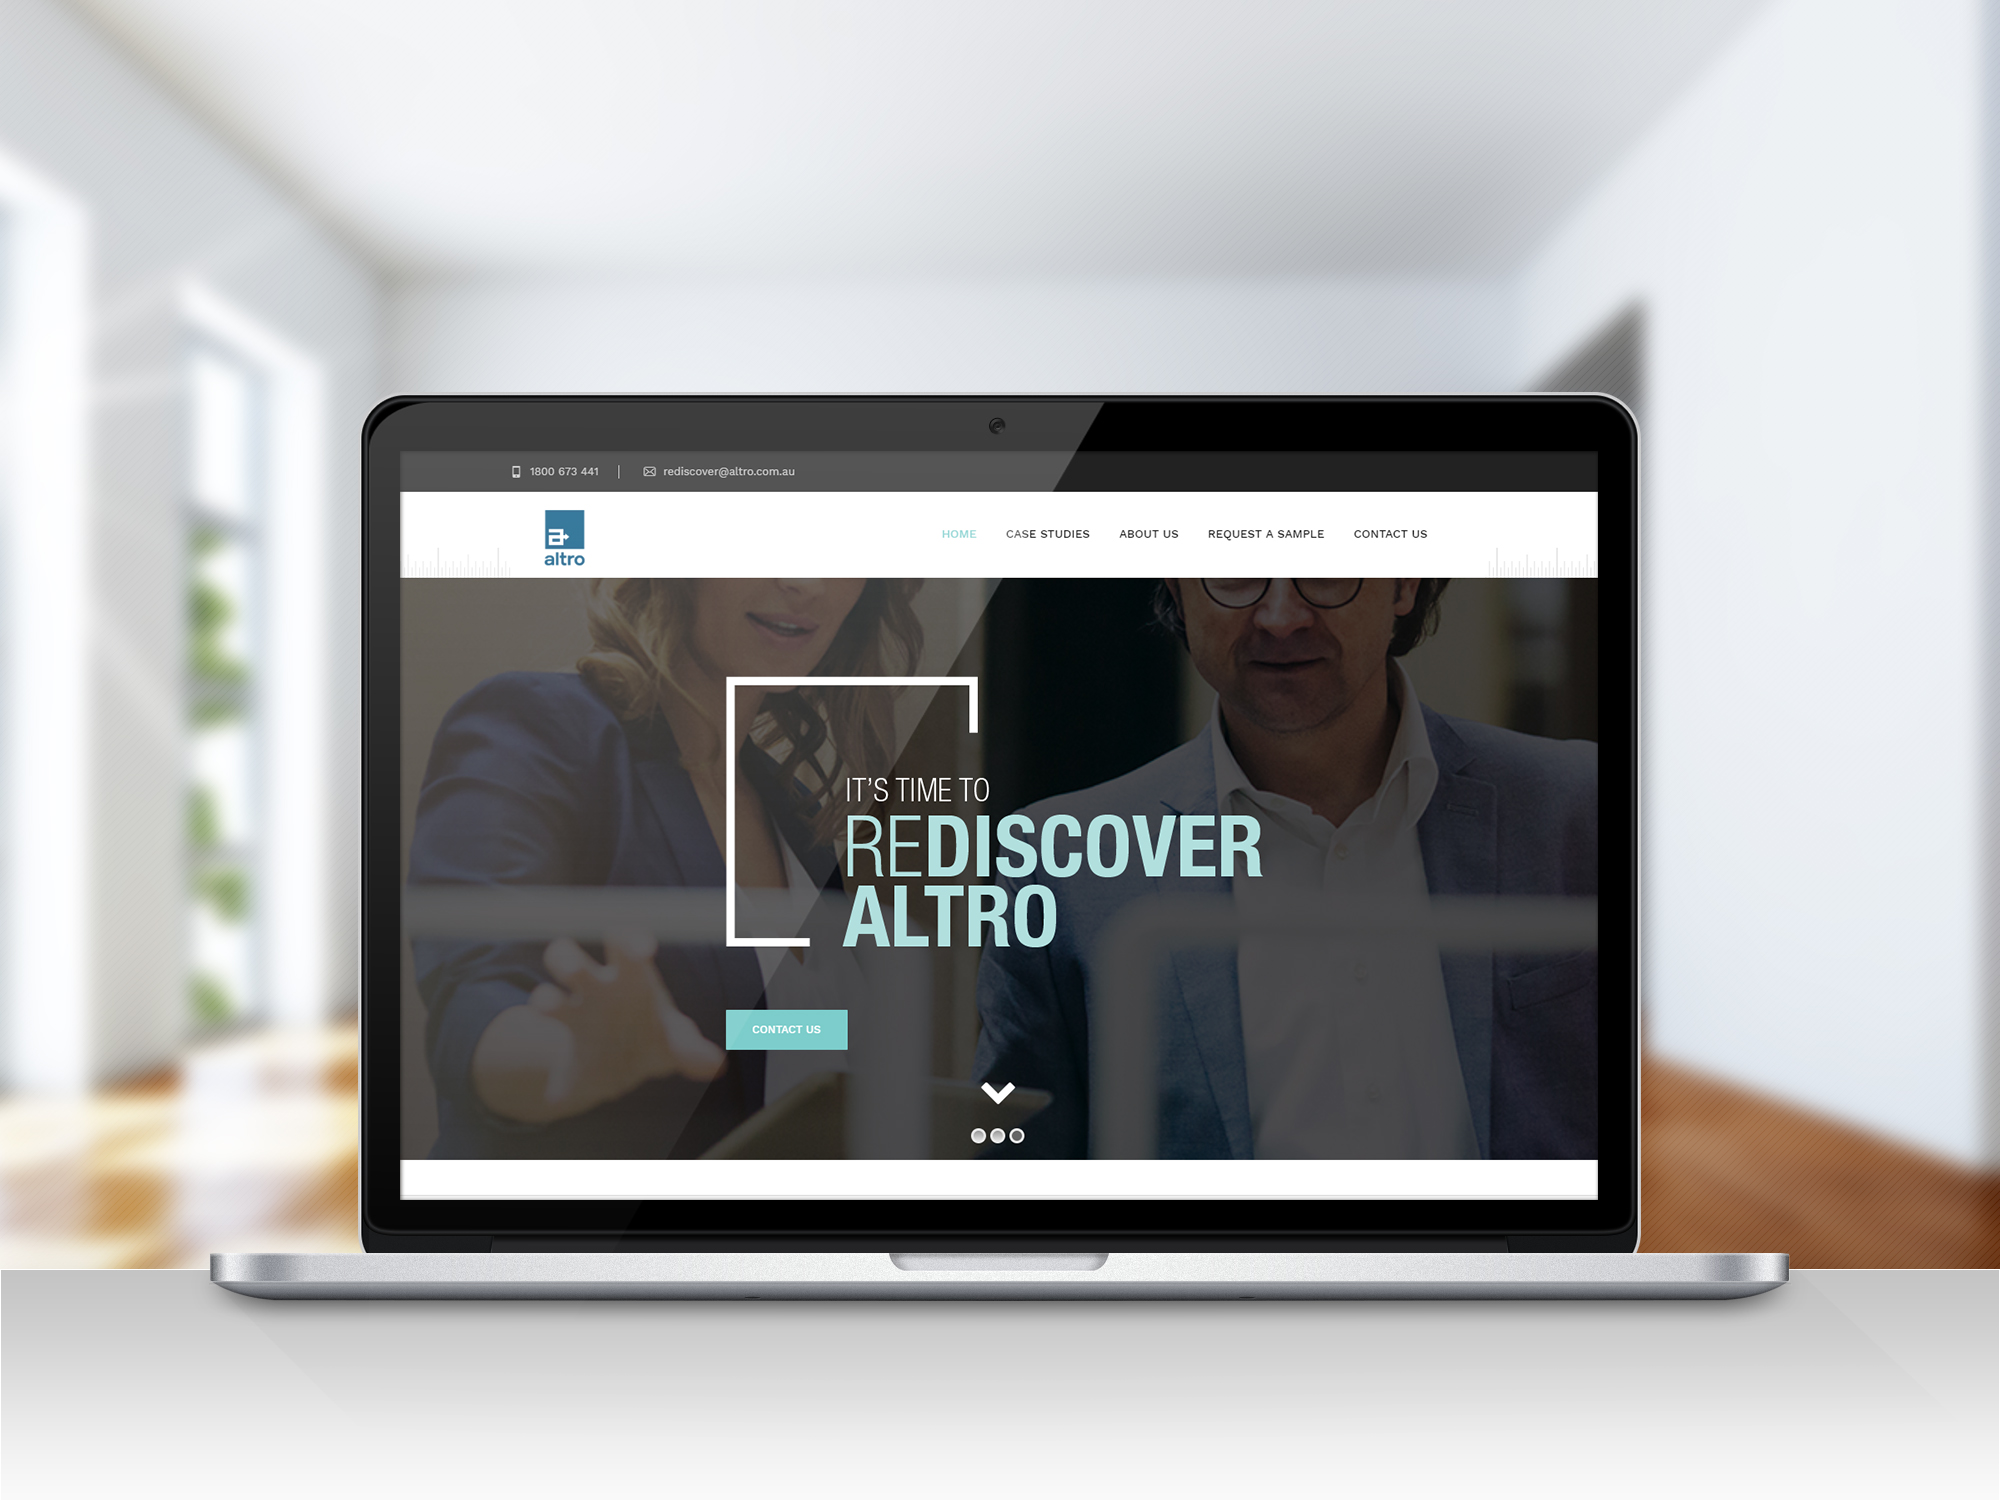 Marketing campaign new product launch website